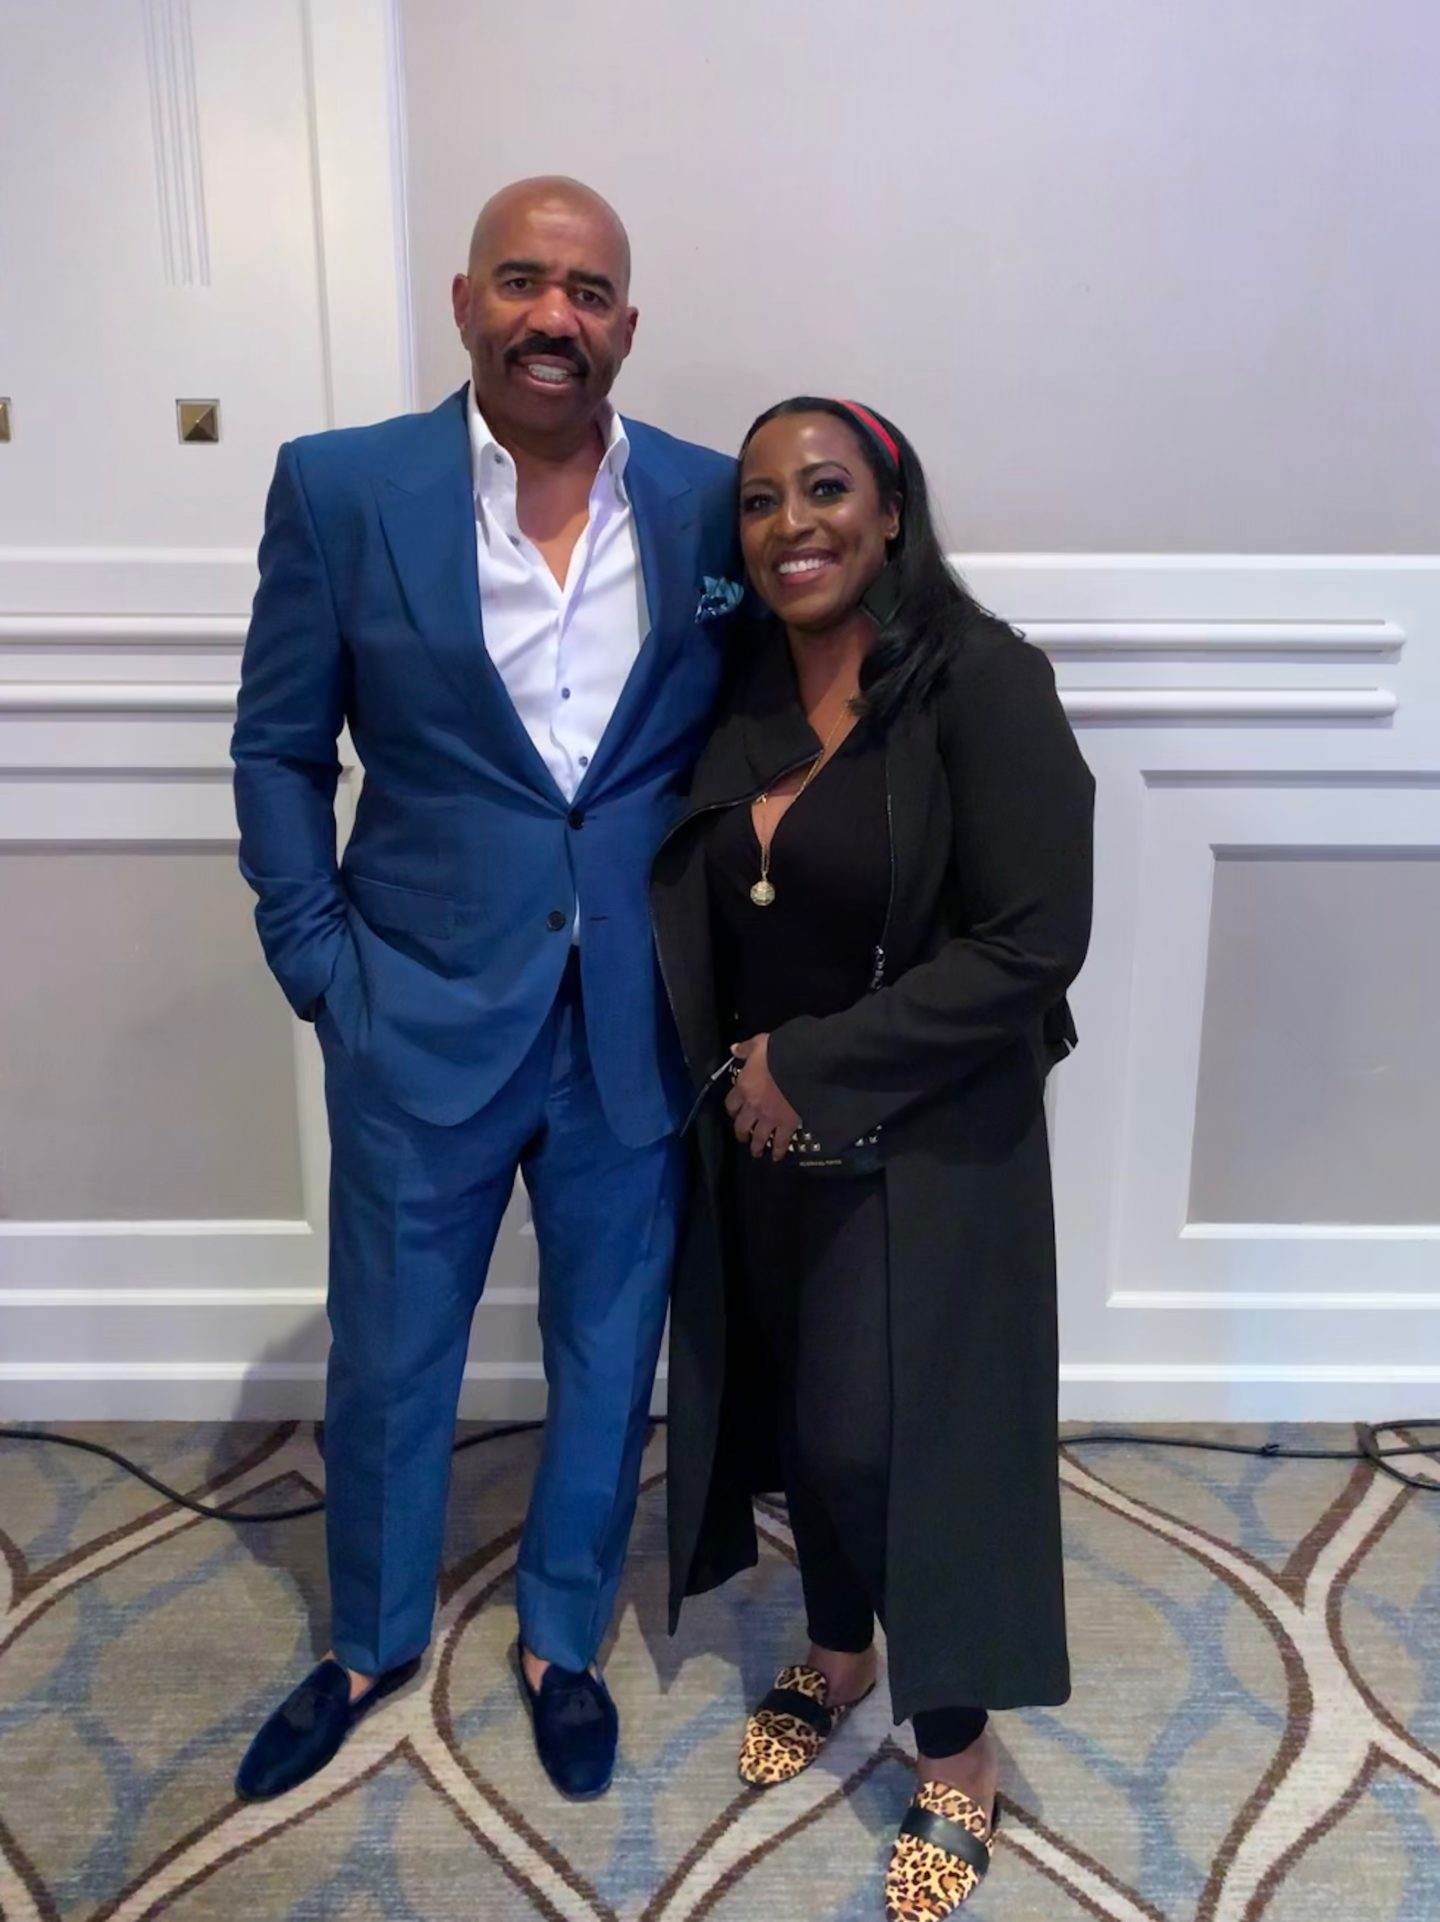 Ayanna Henderson Signs on as Exclusive Social Media Live Event Producer & Manager for Steve Harvey's Vault Conference